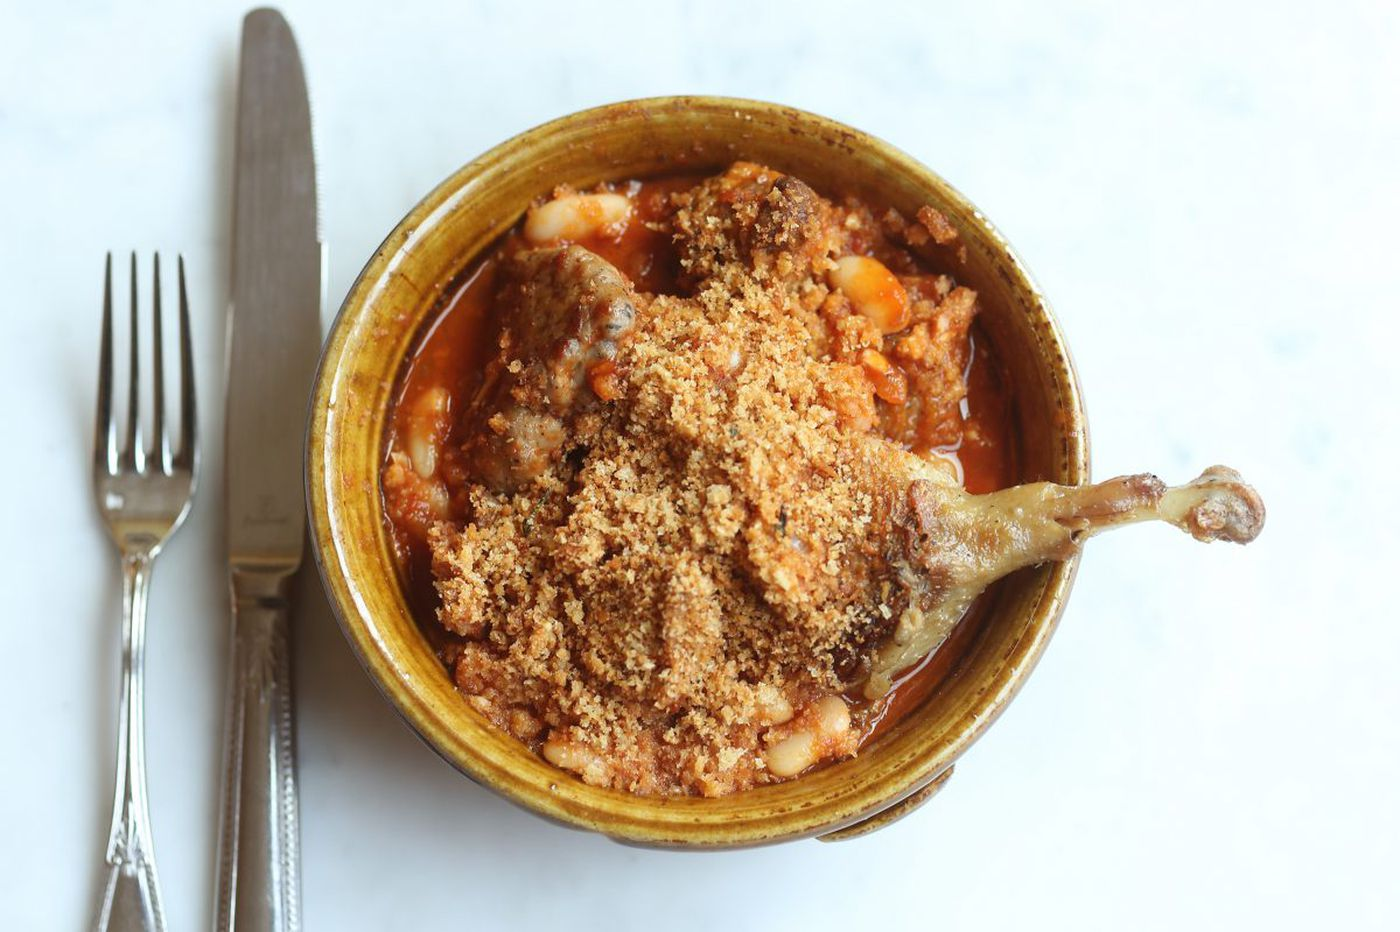 It's cassoulet season at Bistrot La Minette